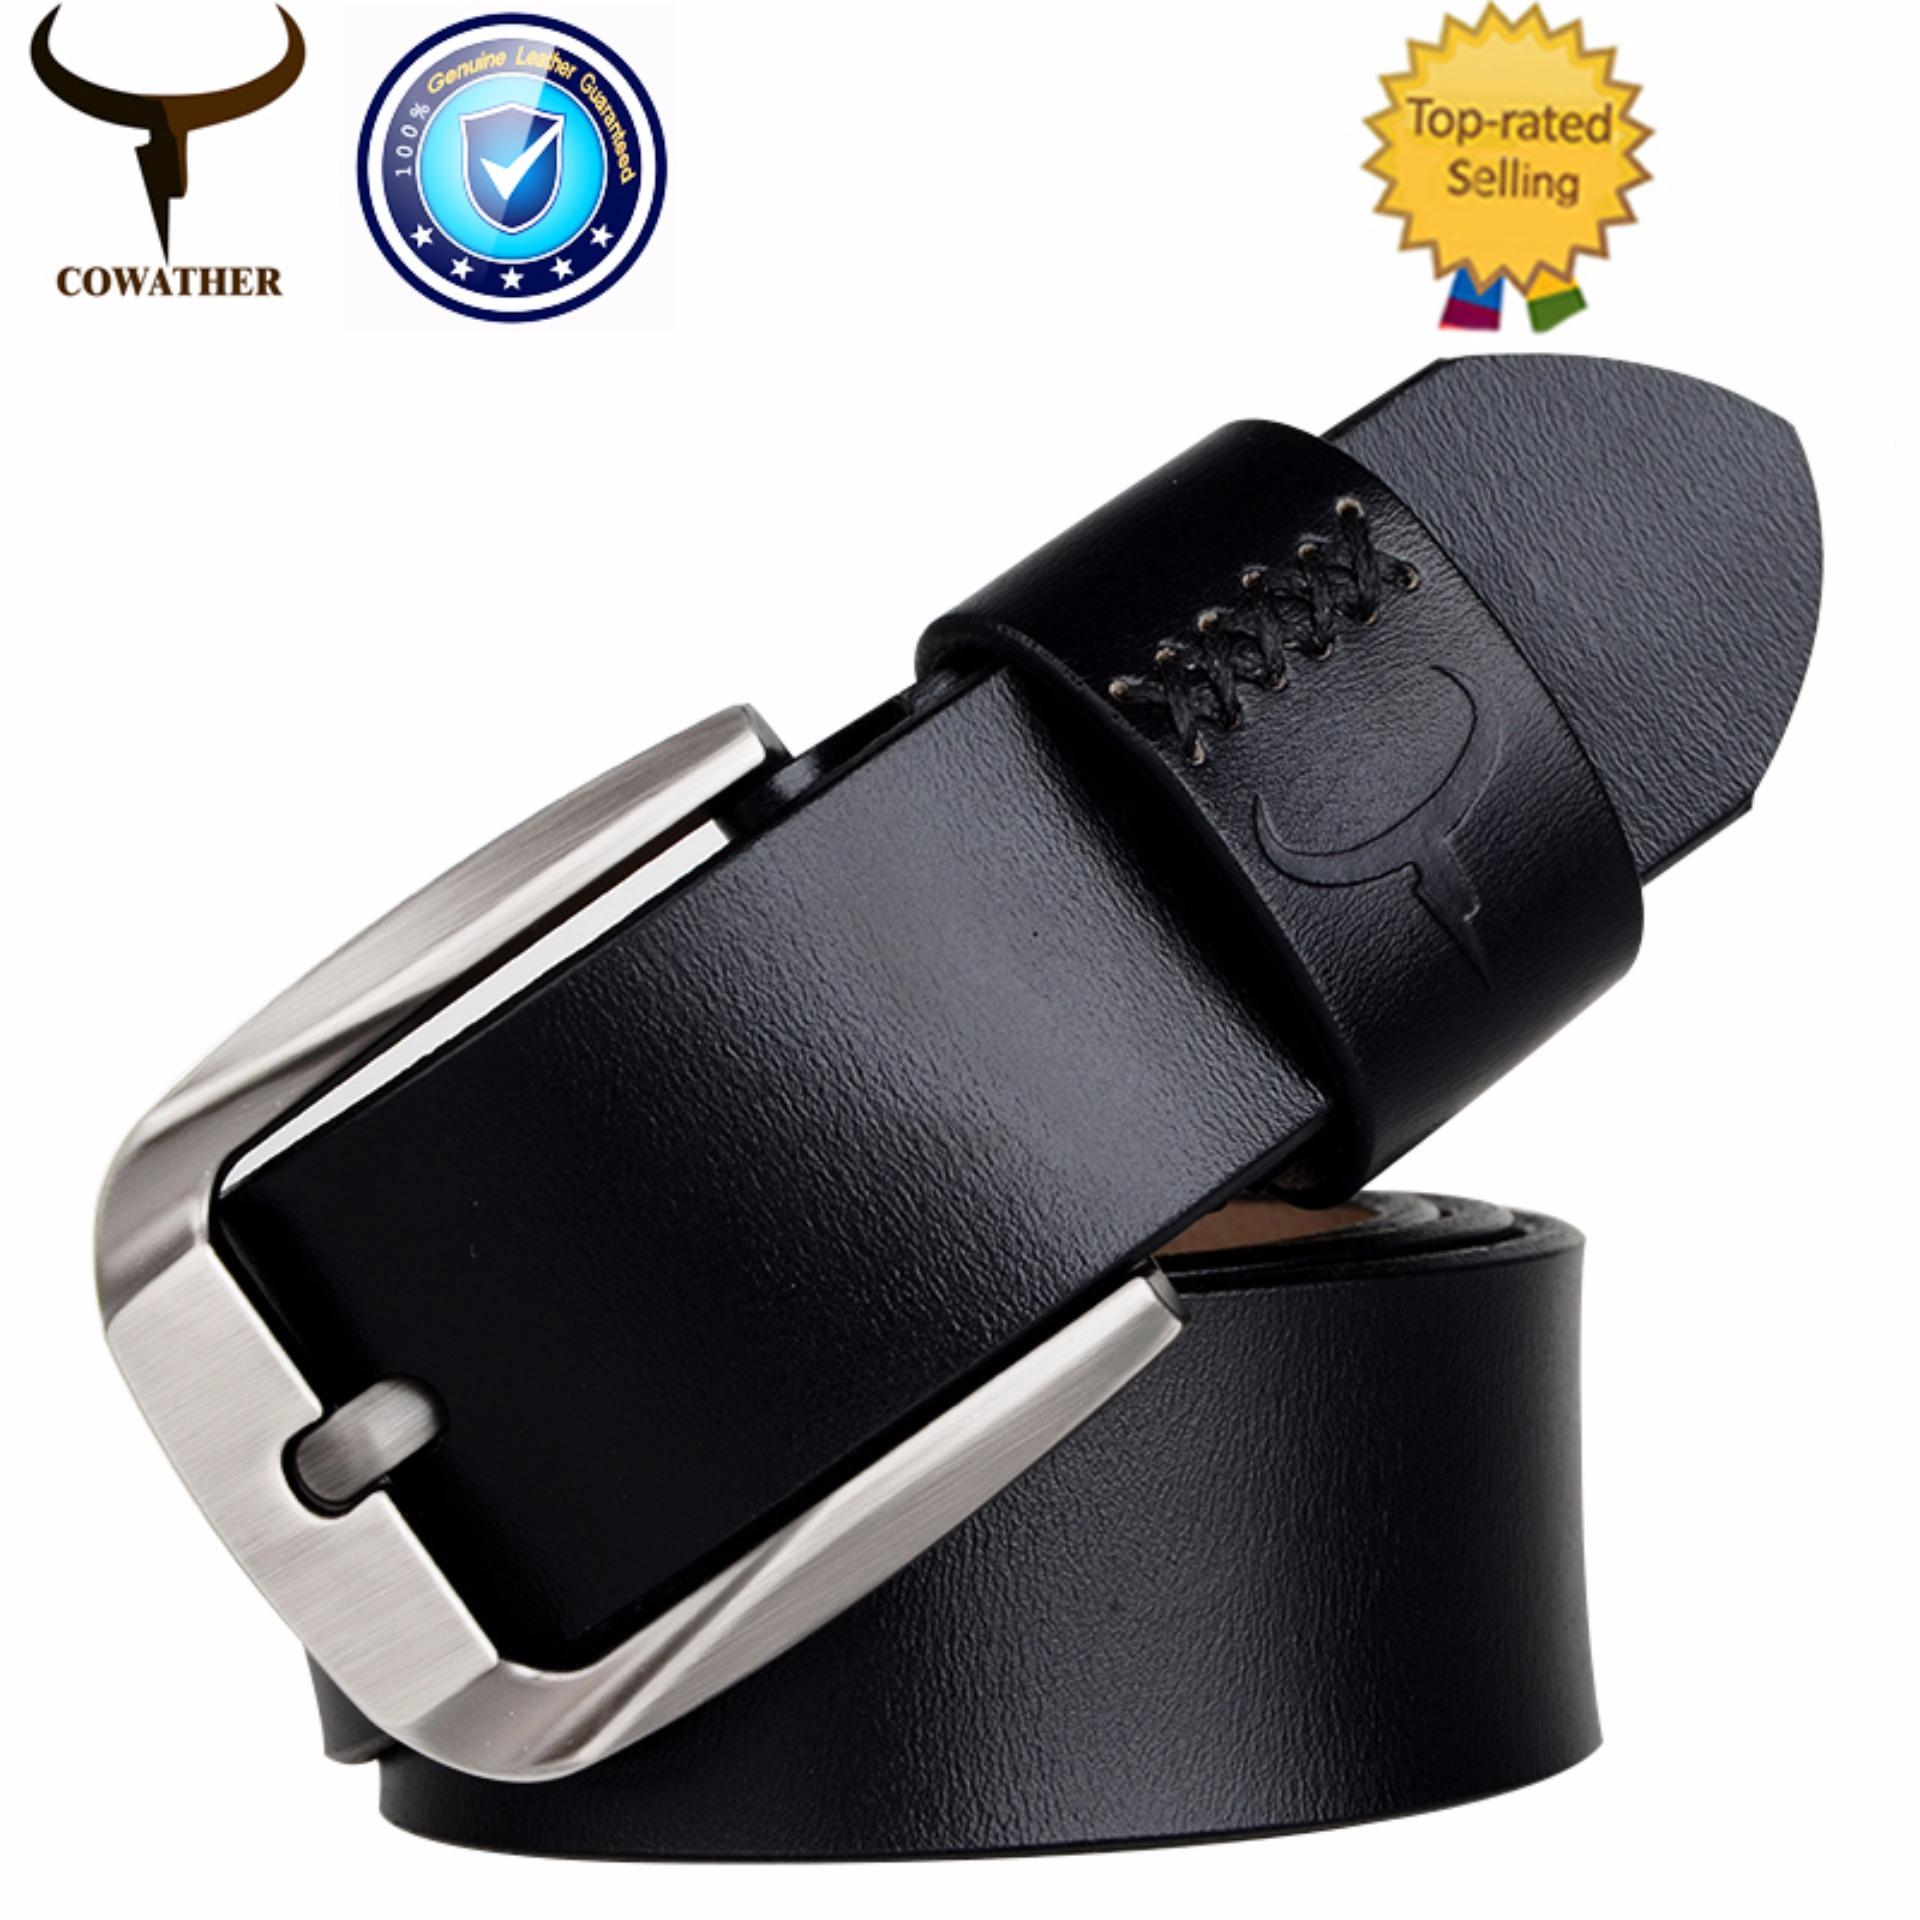 Review Cowather Kulit Asli Pria Ratchet Dress Belt Kulit Halus Reversible Bulu Edge Belt Terbaru